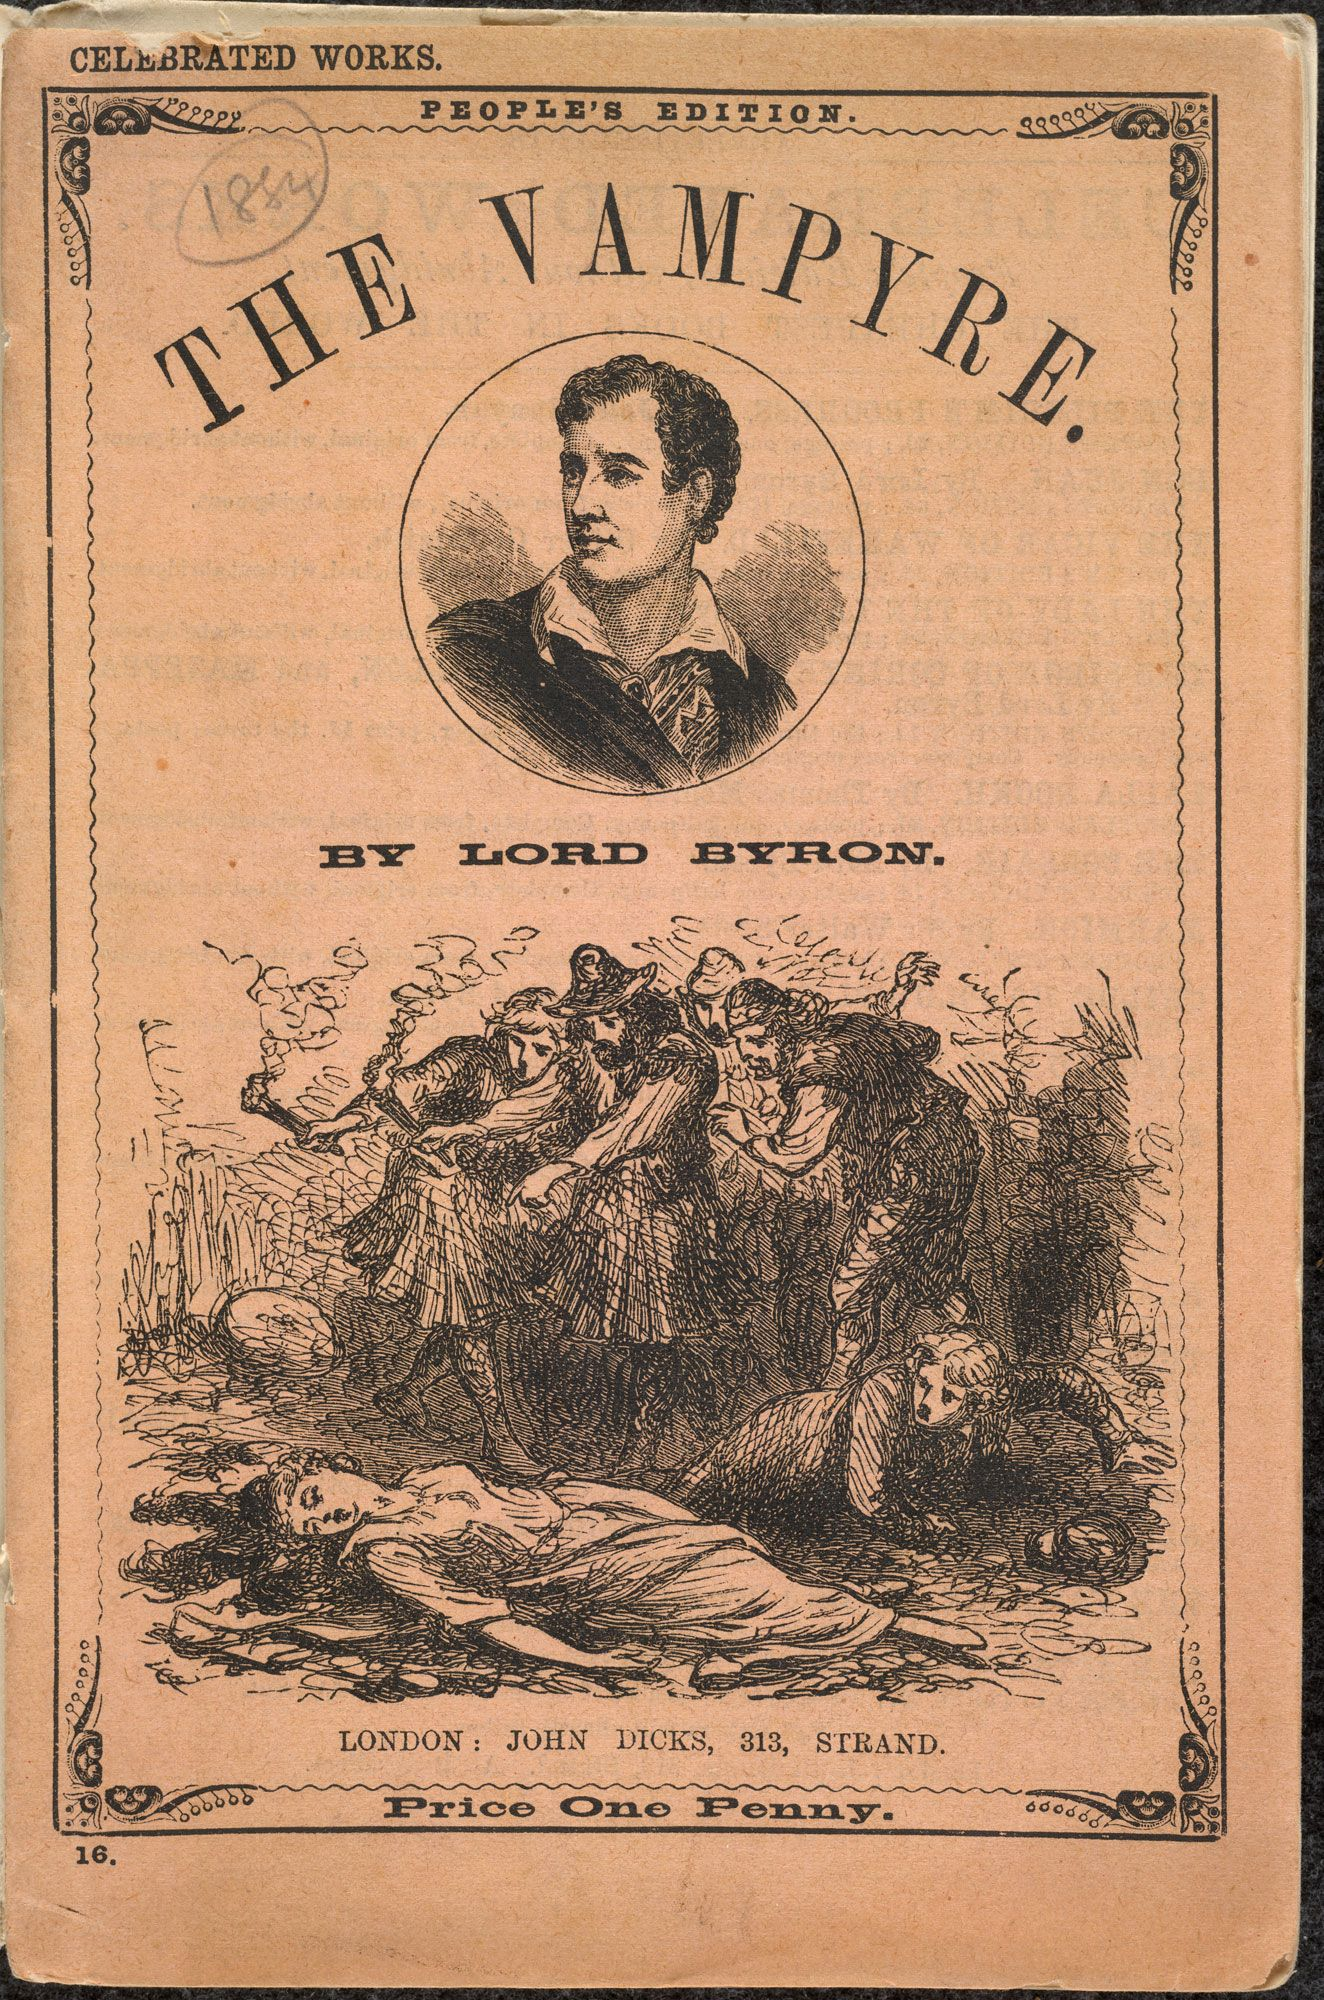 lord byron and his literature Essay lord byron and his literature lord byron was a man whose passion for life seemed unequaled by any of the other romantic figures byrons personal character.